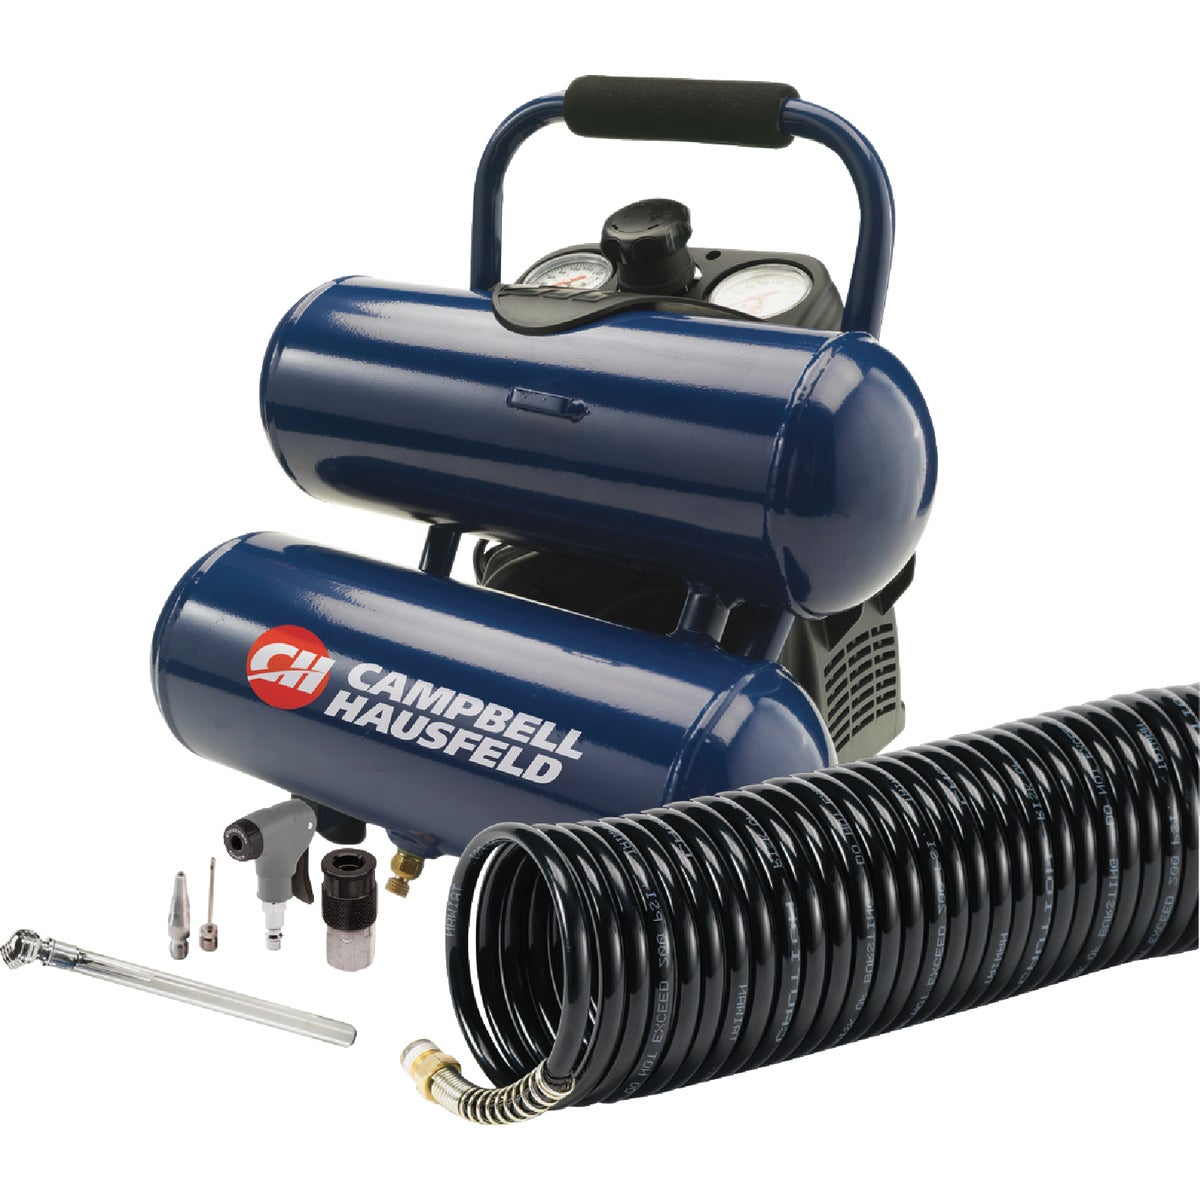 125 PSI AIR COMPRESSOR - FP260200DI by Campbell Hausfeld Di